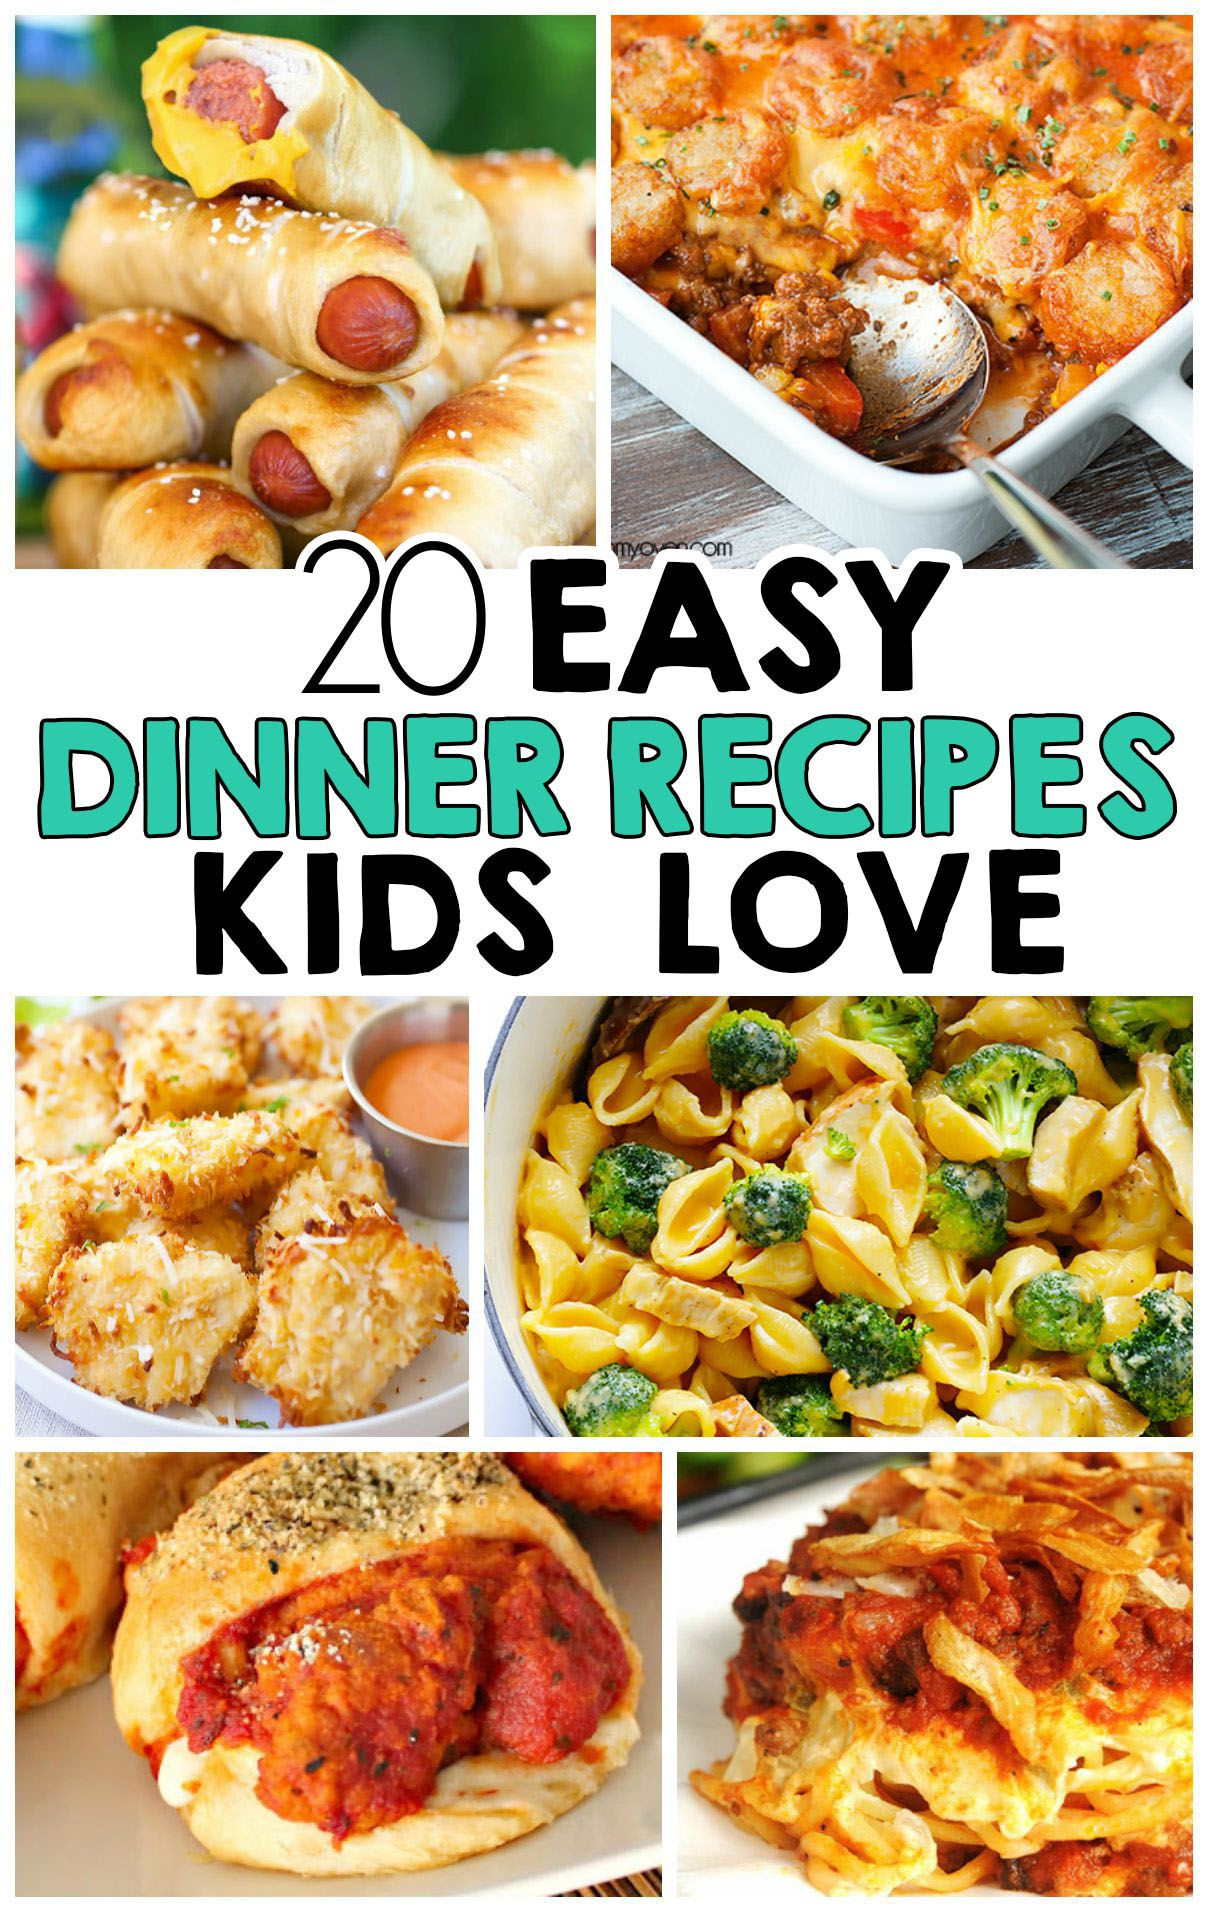 Heart Healthy Recipes For Picky Eaters  20 Easy Dinner Recipes That Kids Love